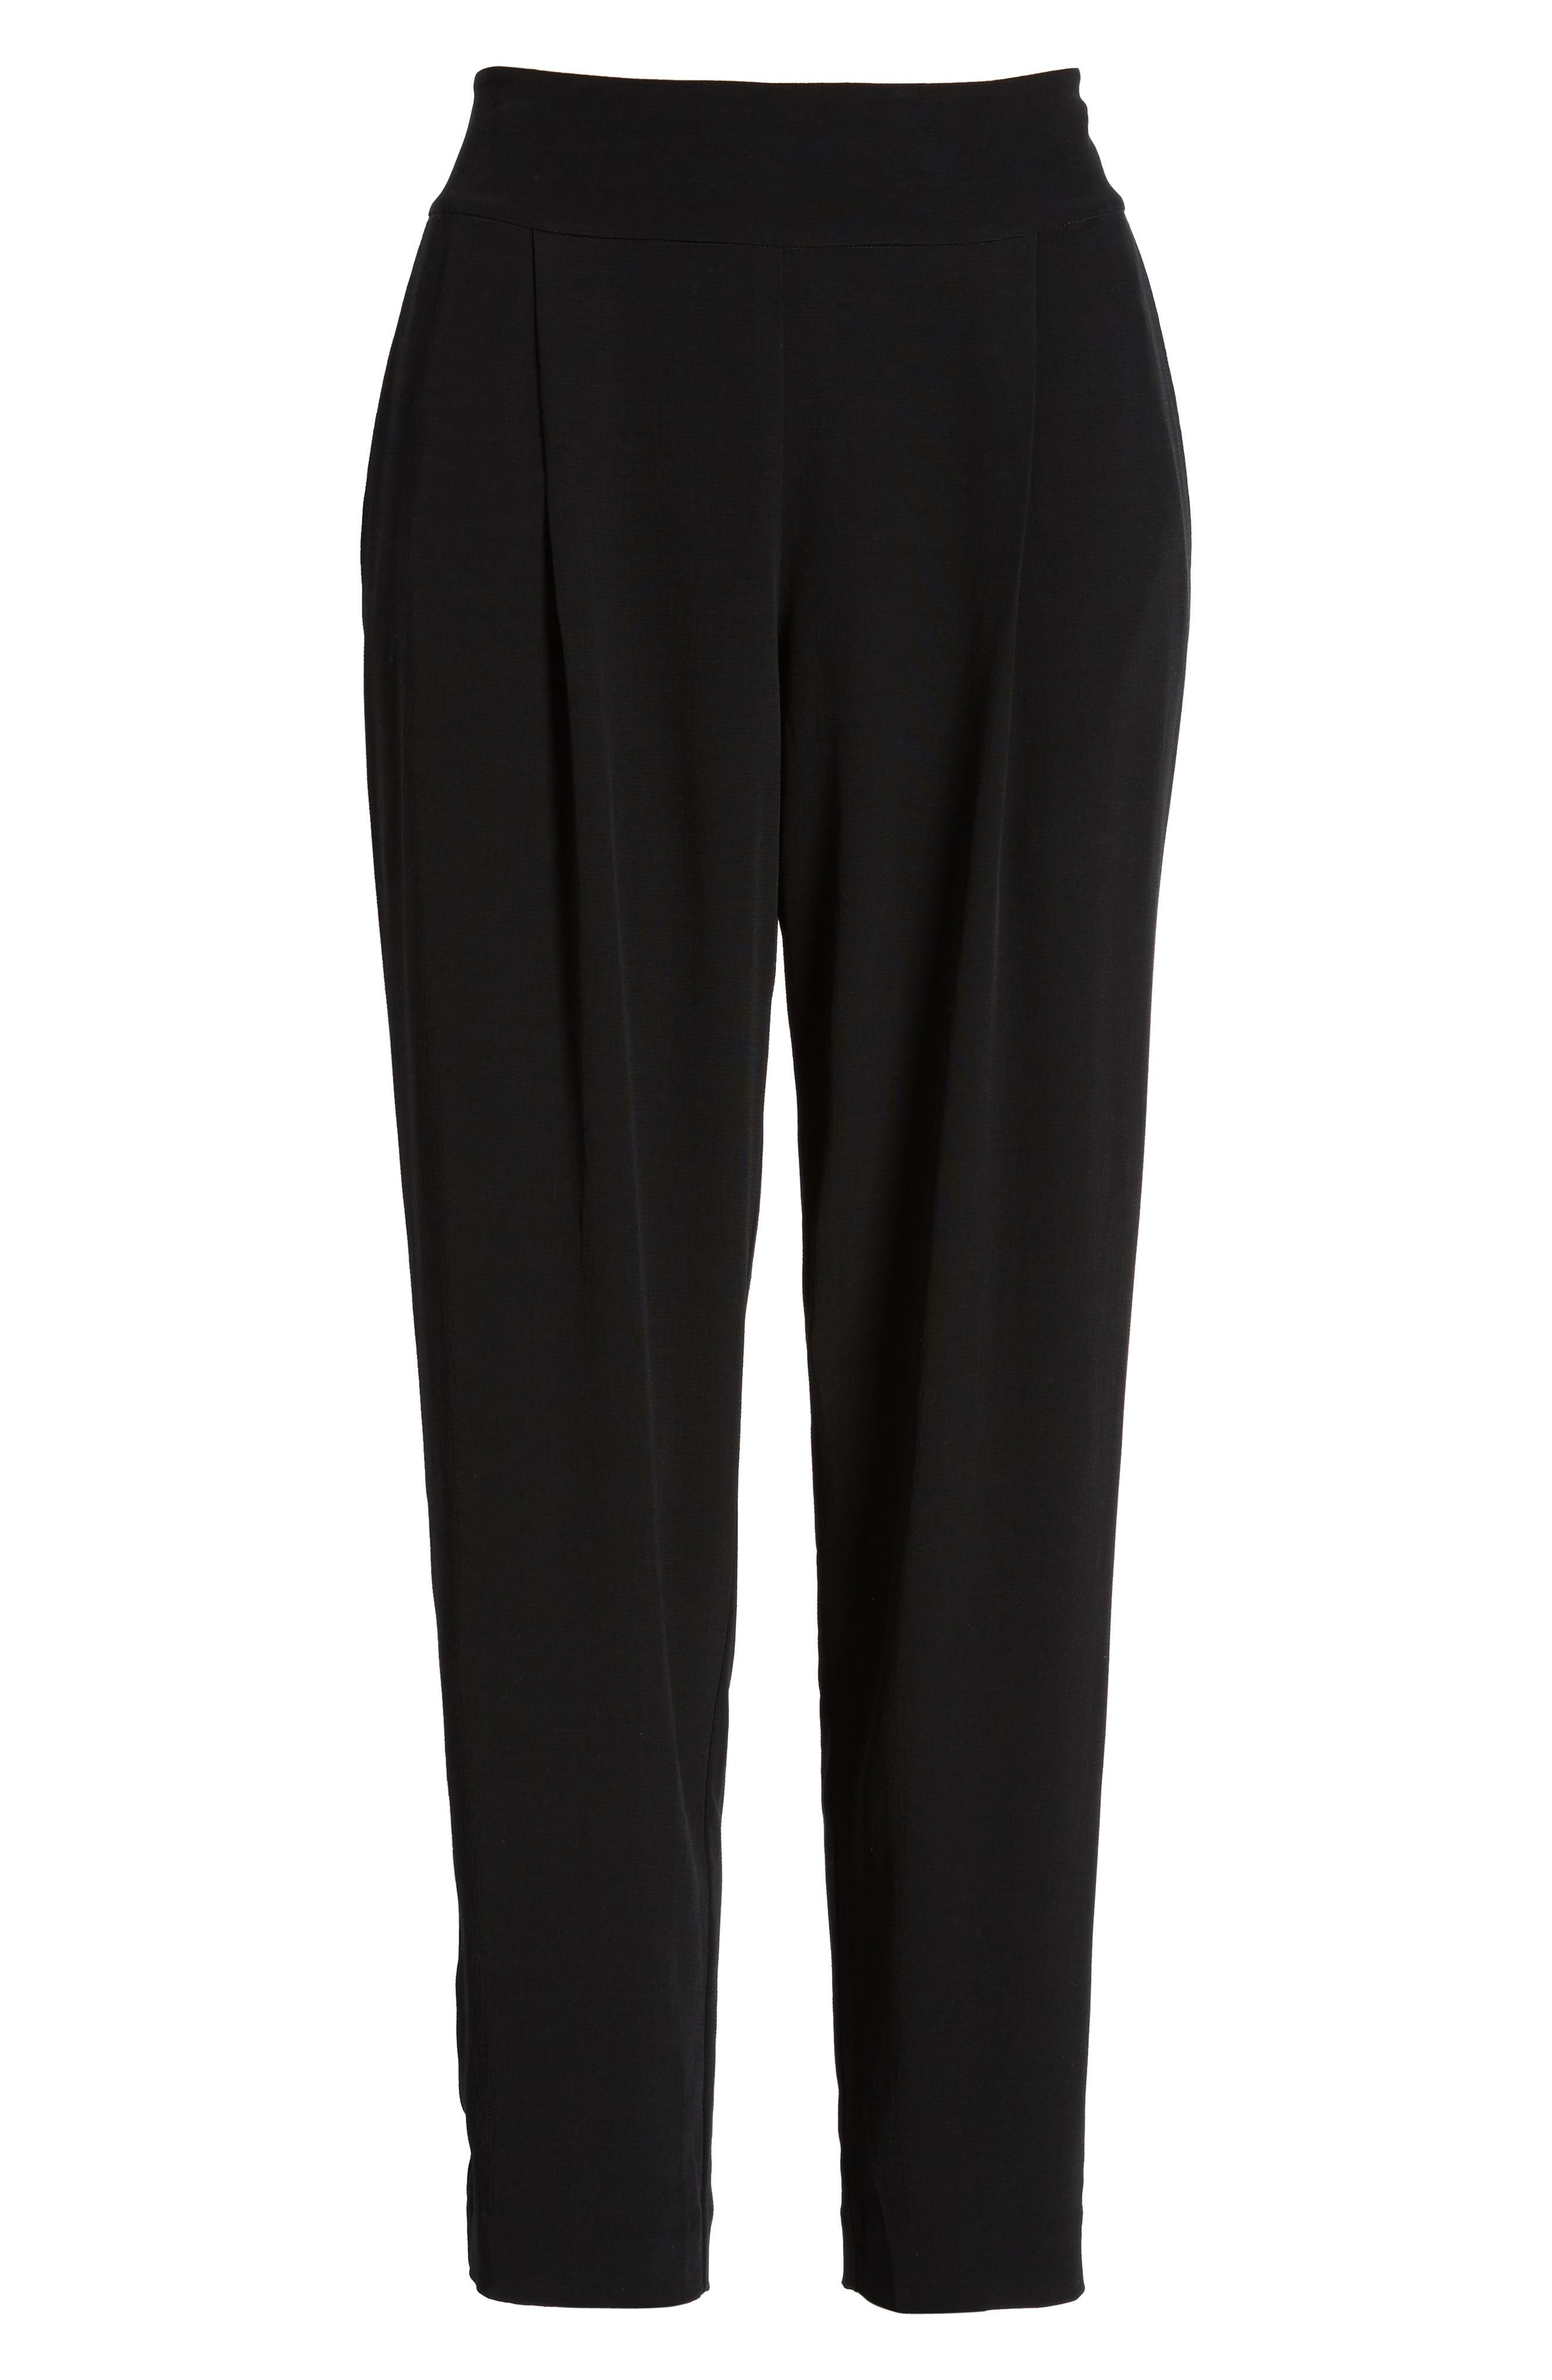 Slouchy Tencel<sup>®</sup> Lyocell Blend Crop Pants,                             Alternate thumbnail 7, color,